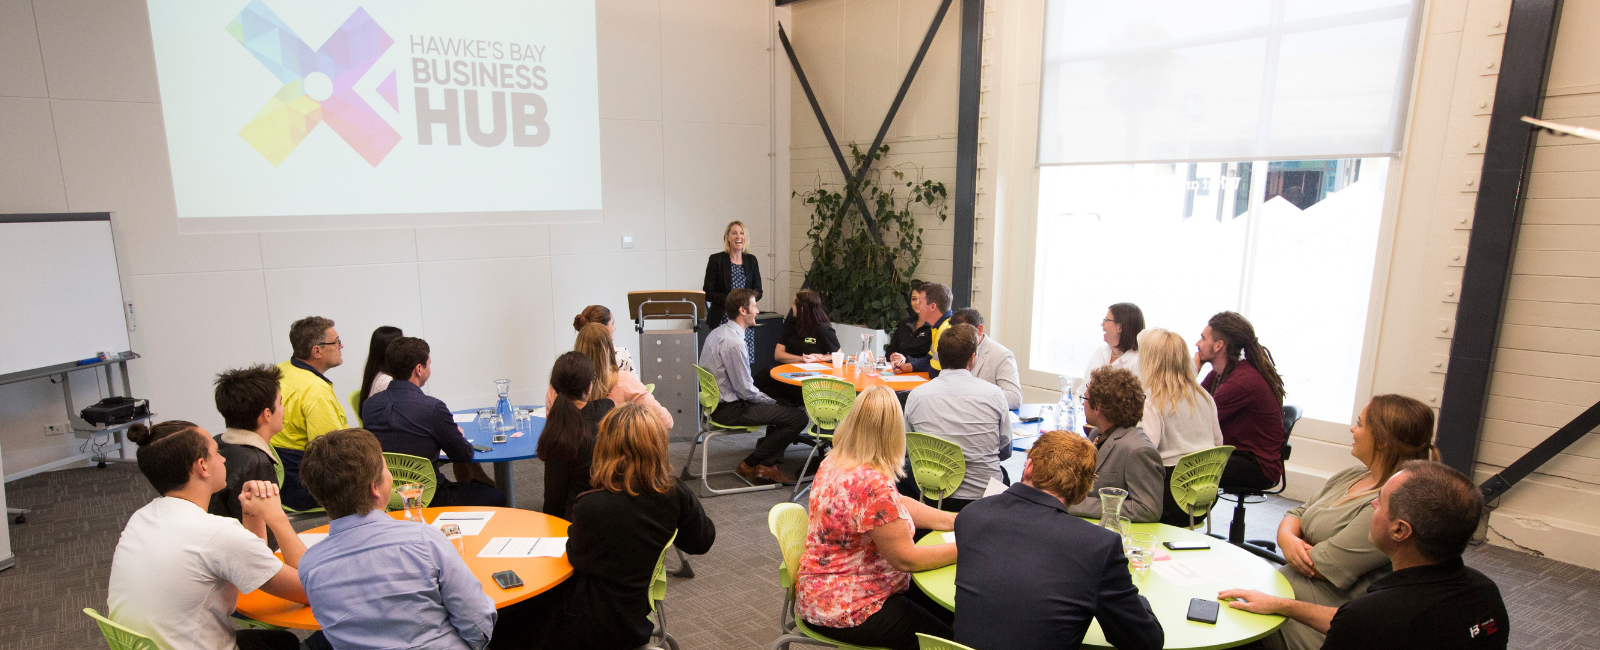 Hawke's Bay Business Hub